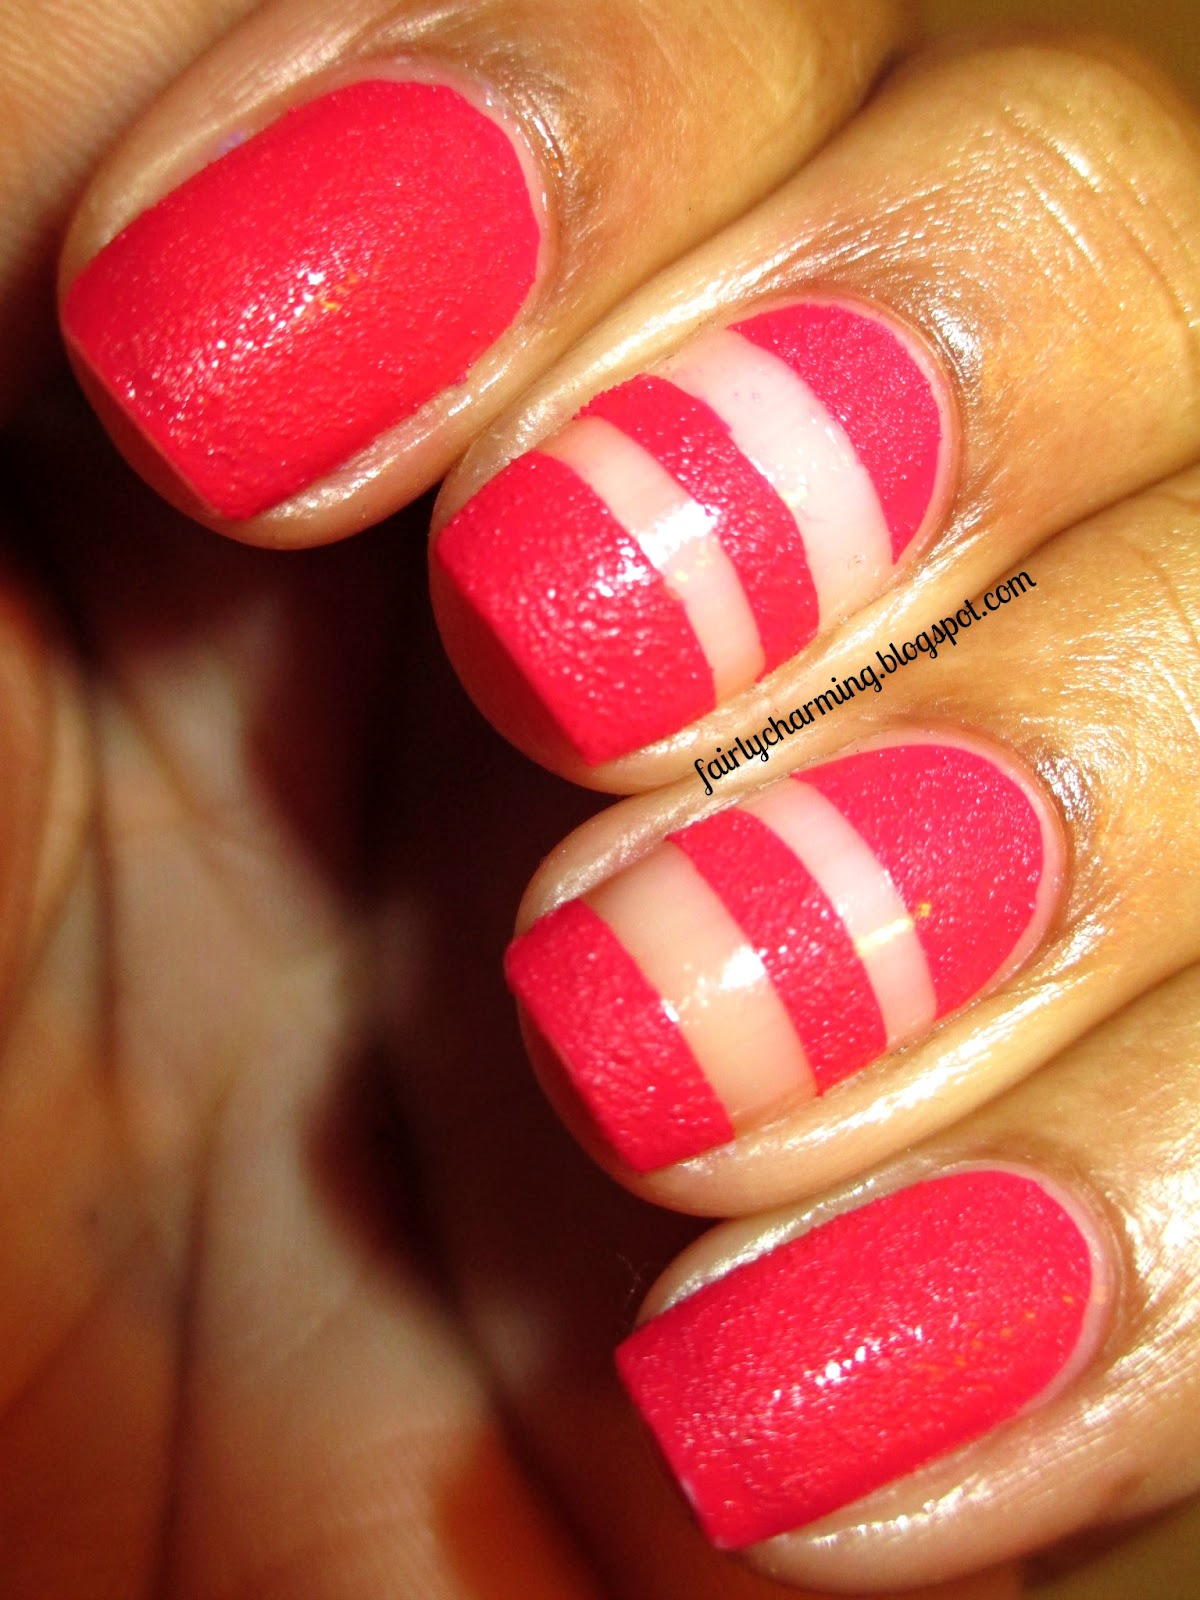 Fairly Charming A Christmas Eve Inspiration: Fairly Charming: Bump & Grind Tape Mani